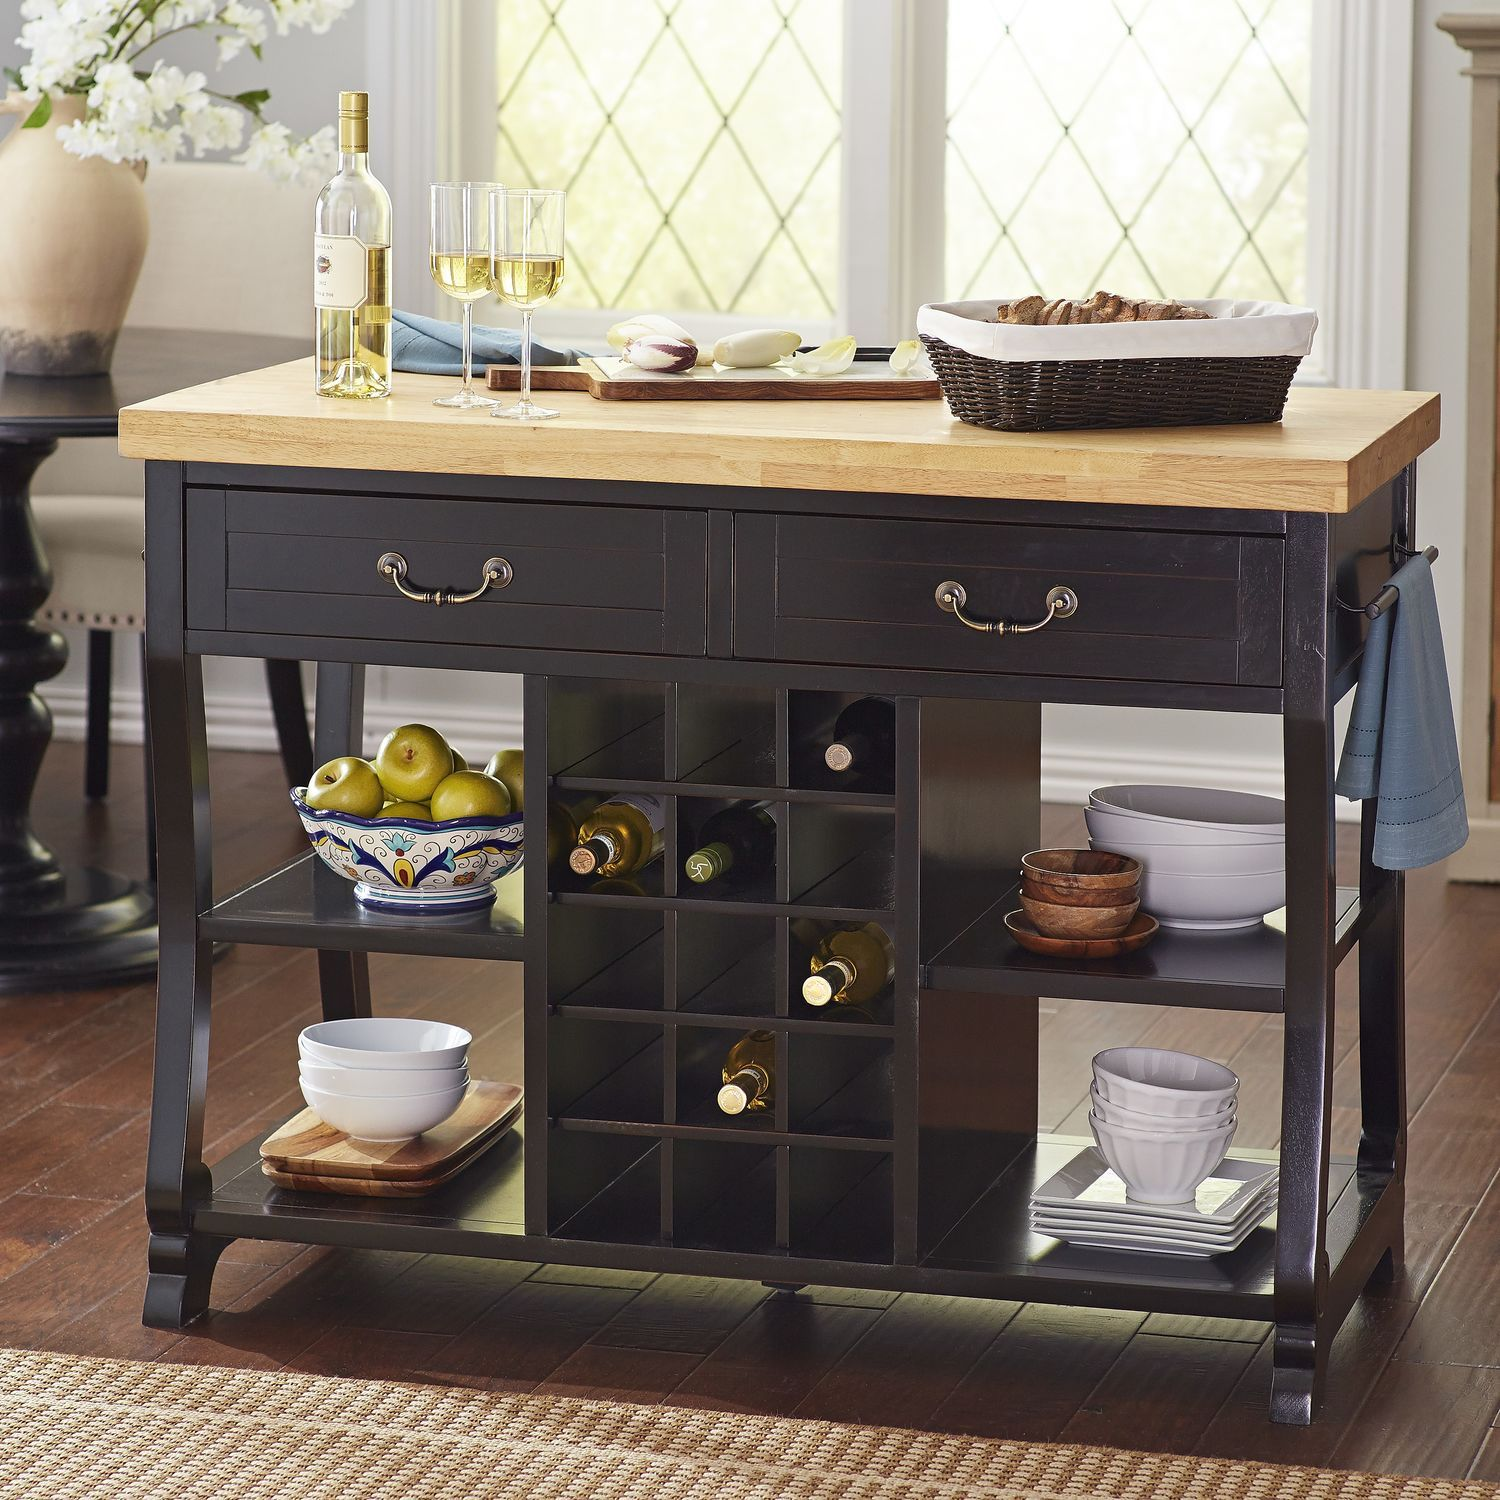 Marchella Kitchen Island - Rubbed Black